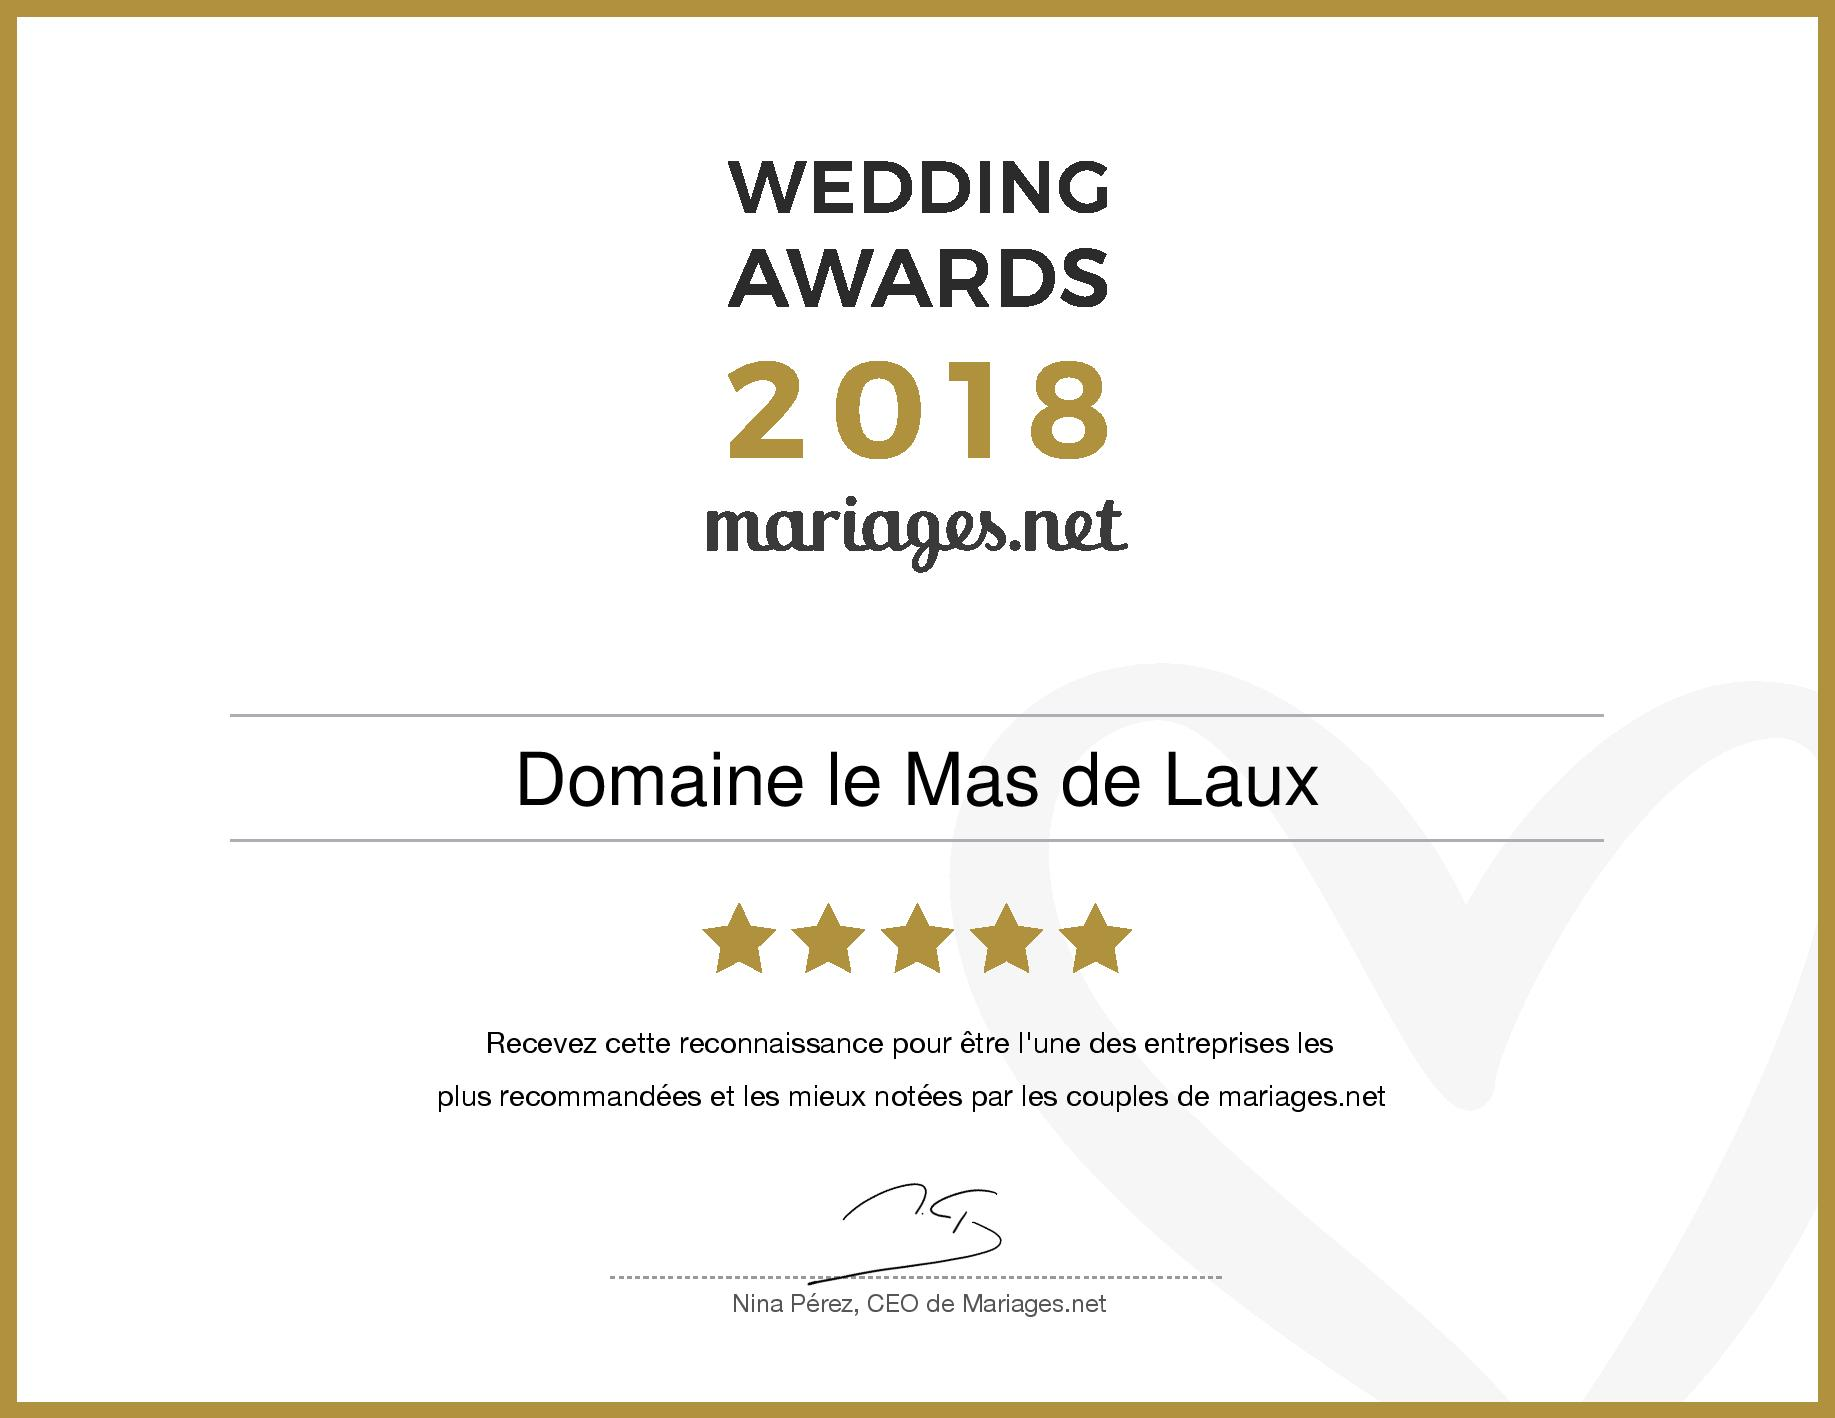 Le Mas de Laux, gagnant Wedding Awards 2018 mariages.net